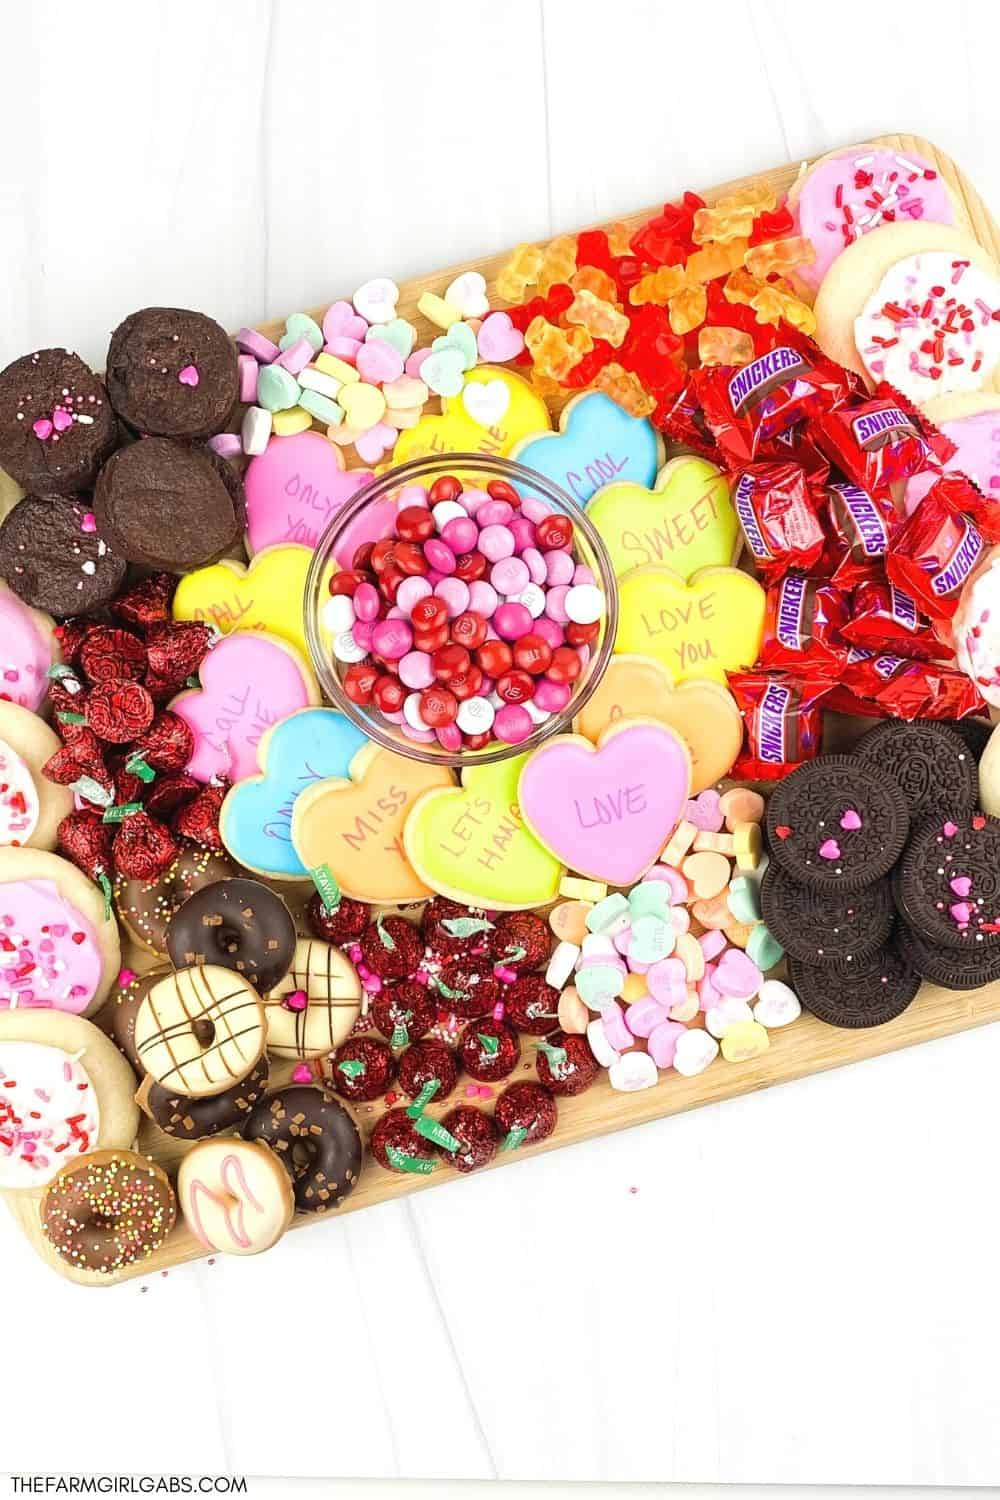 Kids and adults will love eating this Valentine's Day Dessert Board. Find out how to make an easy dessert board for Valentine's day filled with candy and treats. This Valentine's Day charcuterie board is great to make for a party or tailor to any special holiday. Learn how to make a charcuterie board for your next party or gathering. Kids and adults will enjoy this easy dessert board filled with your favorite candies and sweet treats. Read more to find out how to make a holiday dessert board.